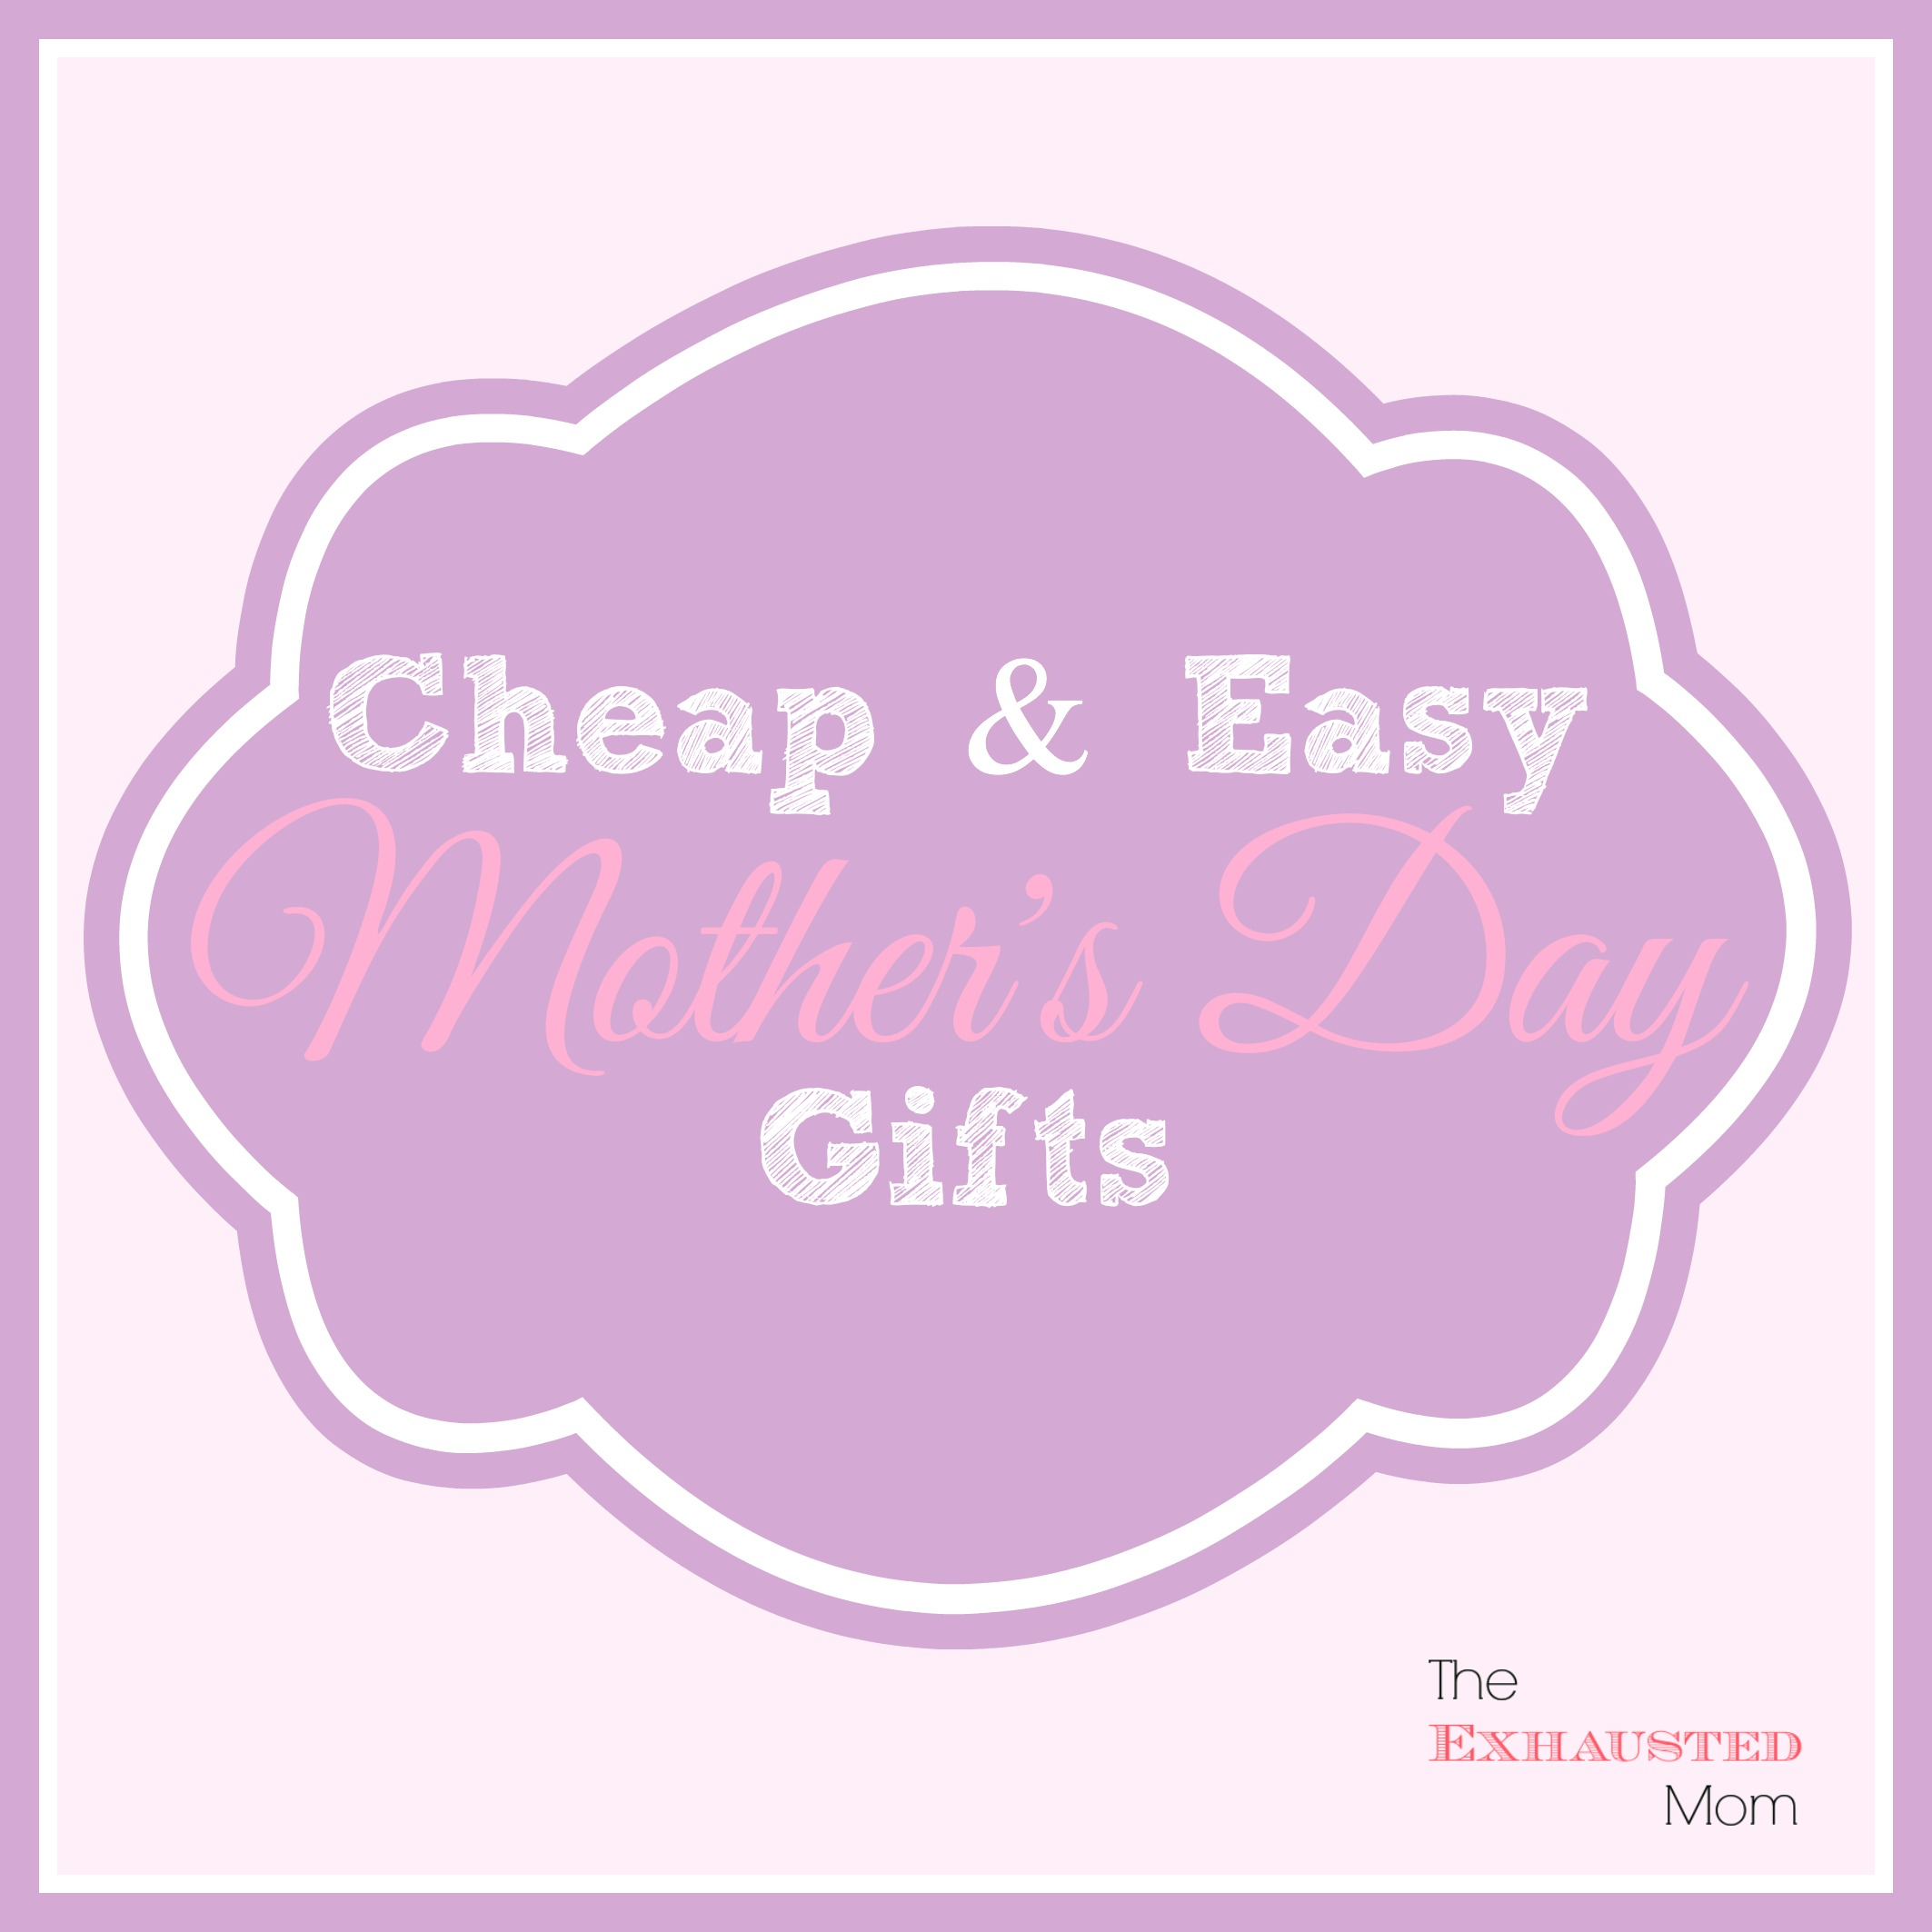 Cheap & Easy Mother's Day Gifts